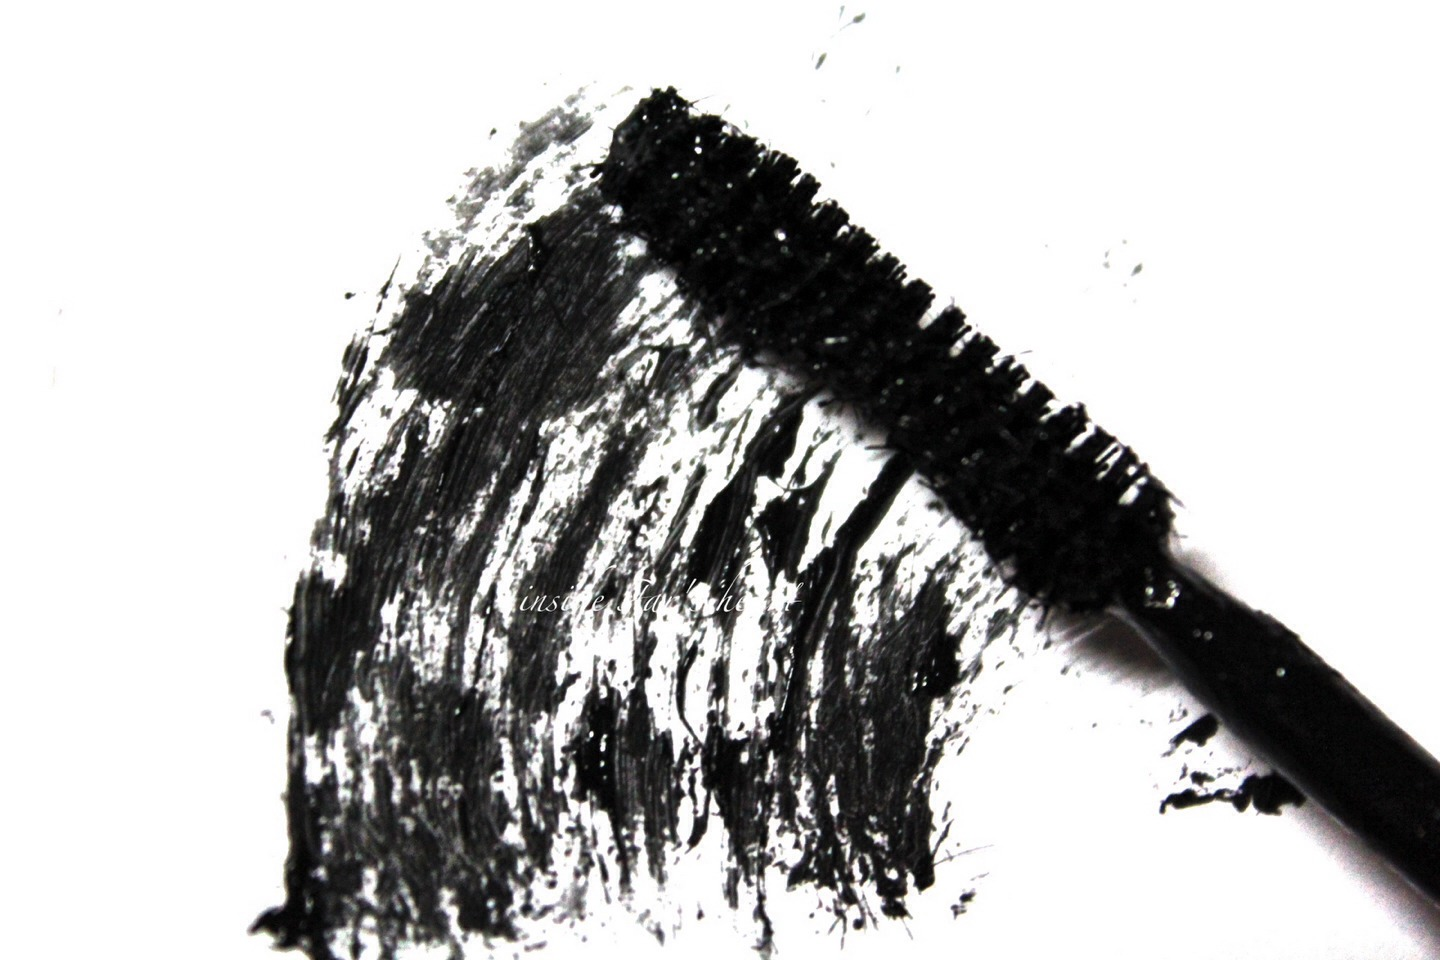 Now put mascara on. Start from the roots of ur lashes to give the illusion u r wearing eyeliner.